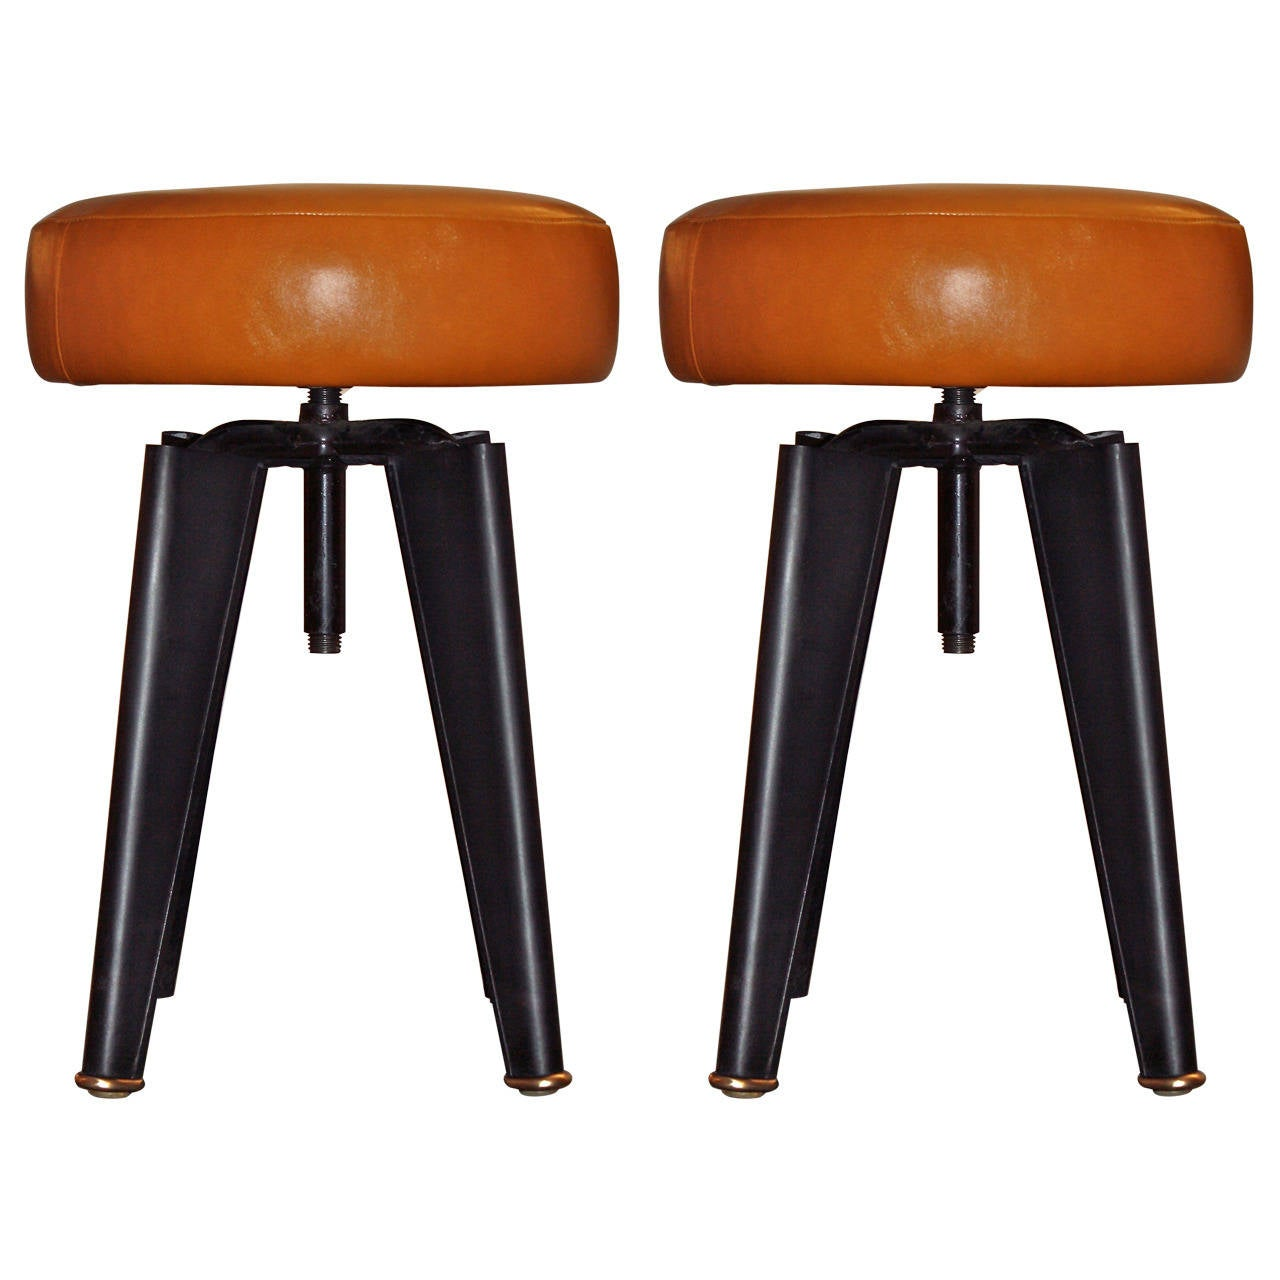 Pair of Piano Stools by Dominique for the Clemenceau Aircraft Carrier 1